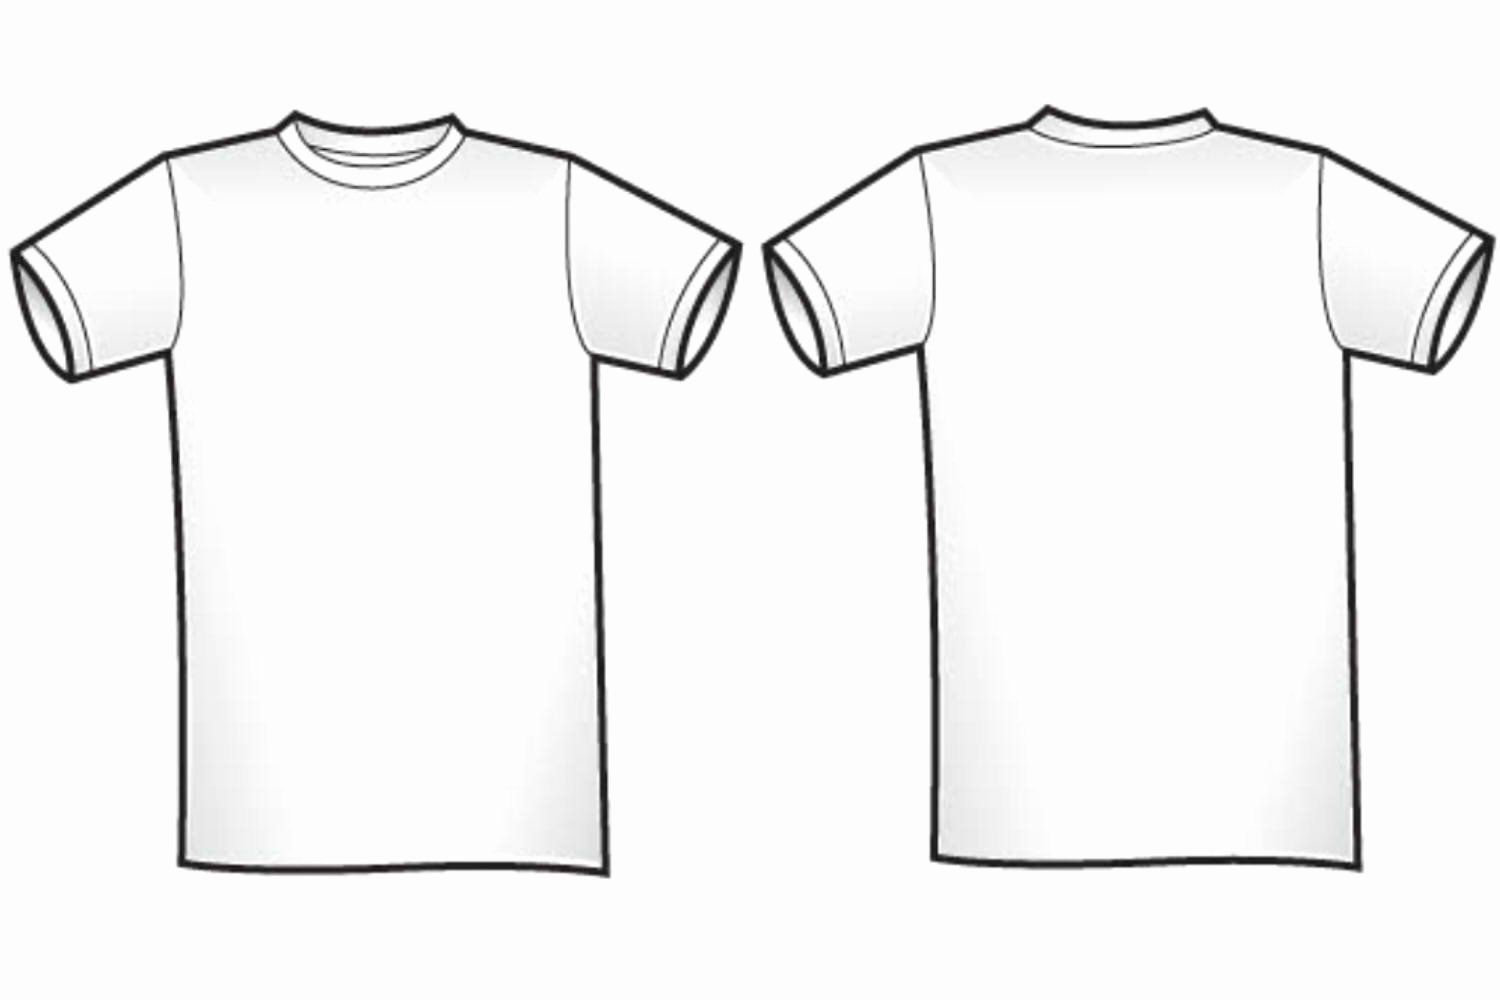 Download Free T Shirt Template New Free Blank T Shirt Outline Download Free Clip Art Free In 2020 Shirt Template Free Tshirt Blank T Shirts